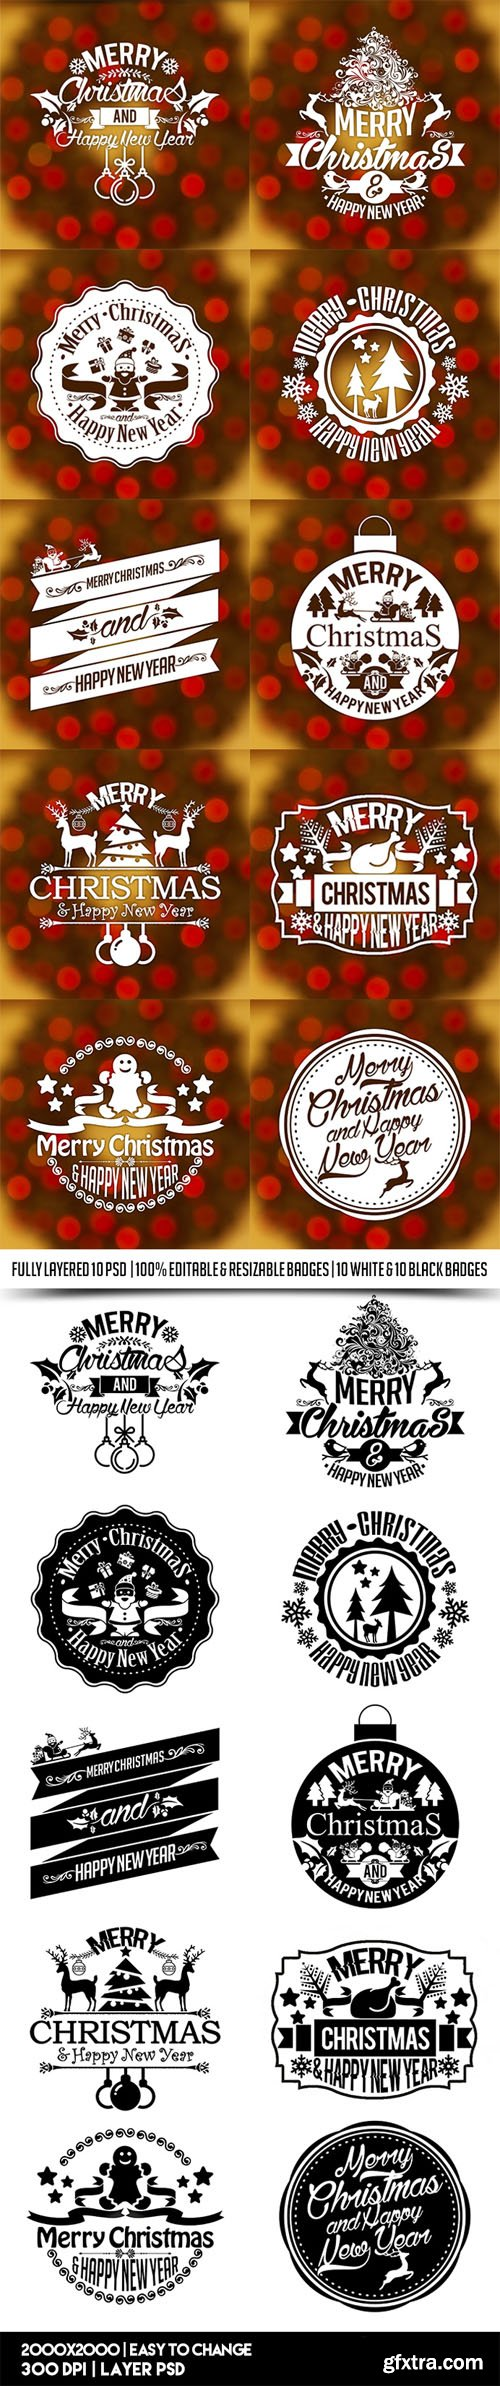 10 Christmas & New Year Vintage Labels/Badges/Stickers in PSD